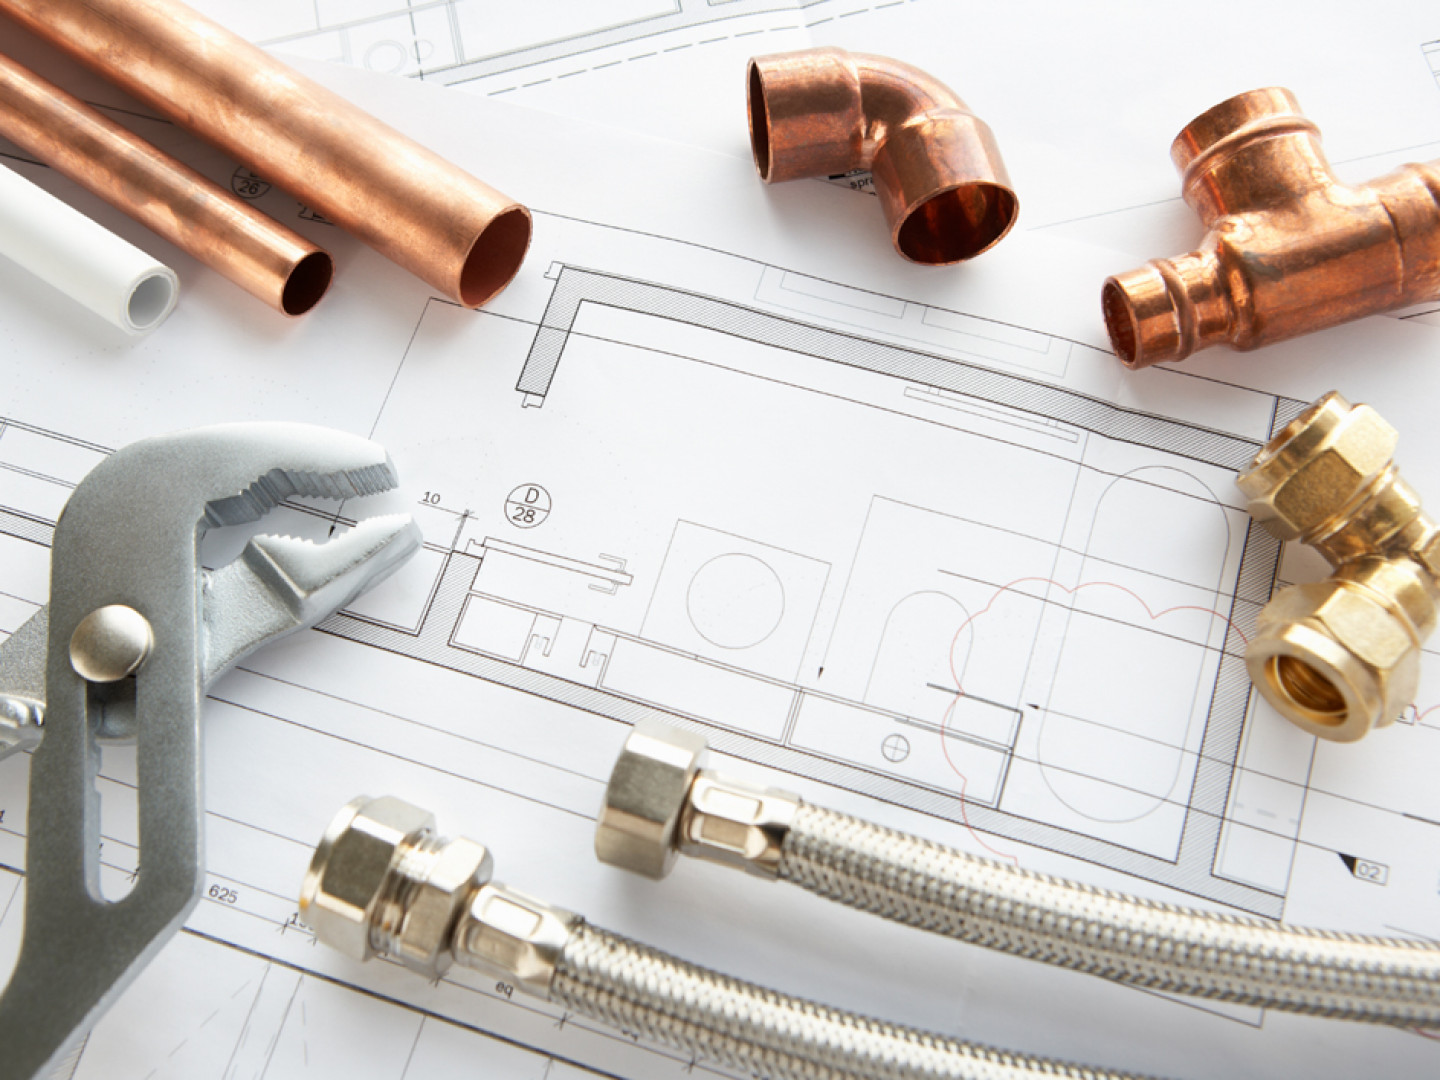 Searching for a Commercial Plumber in the Owensboro, KY Area?